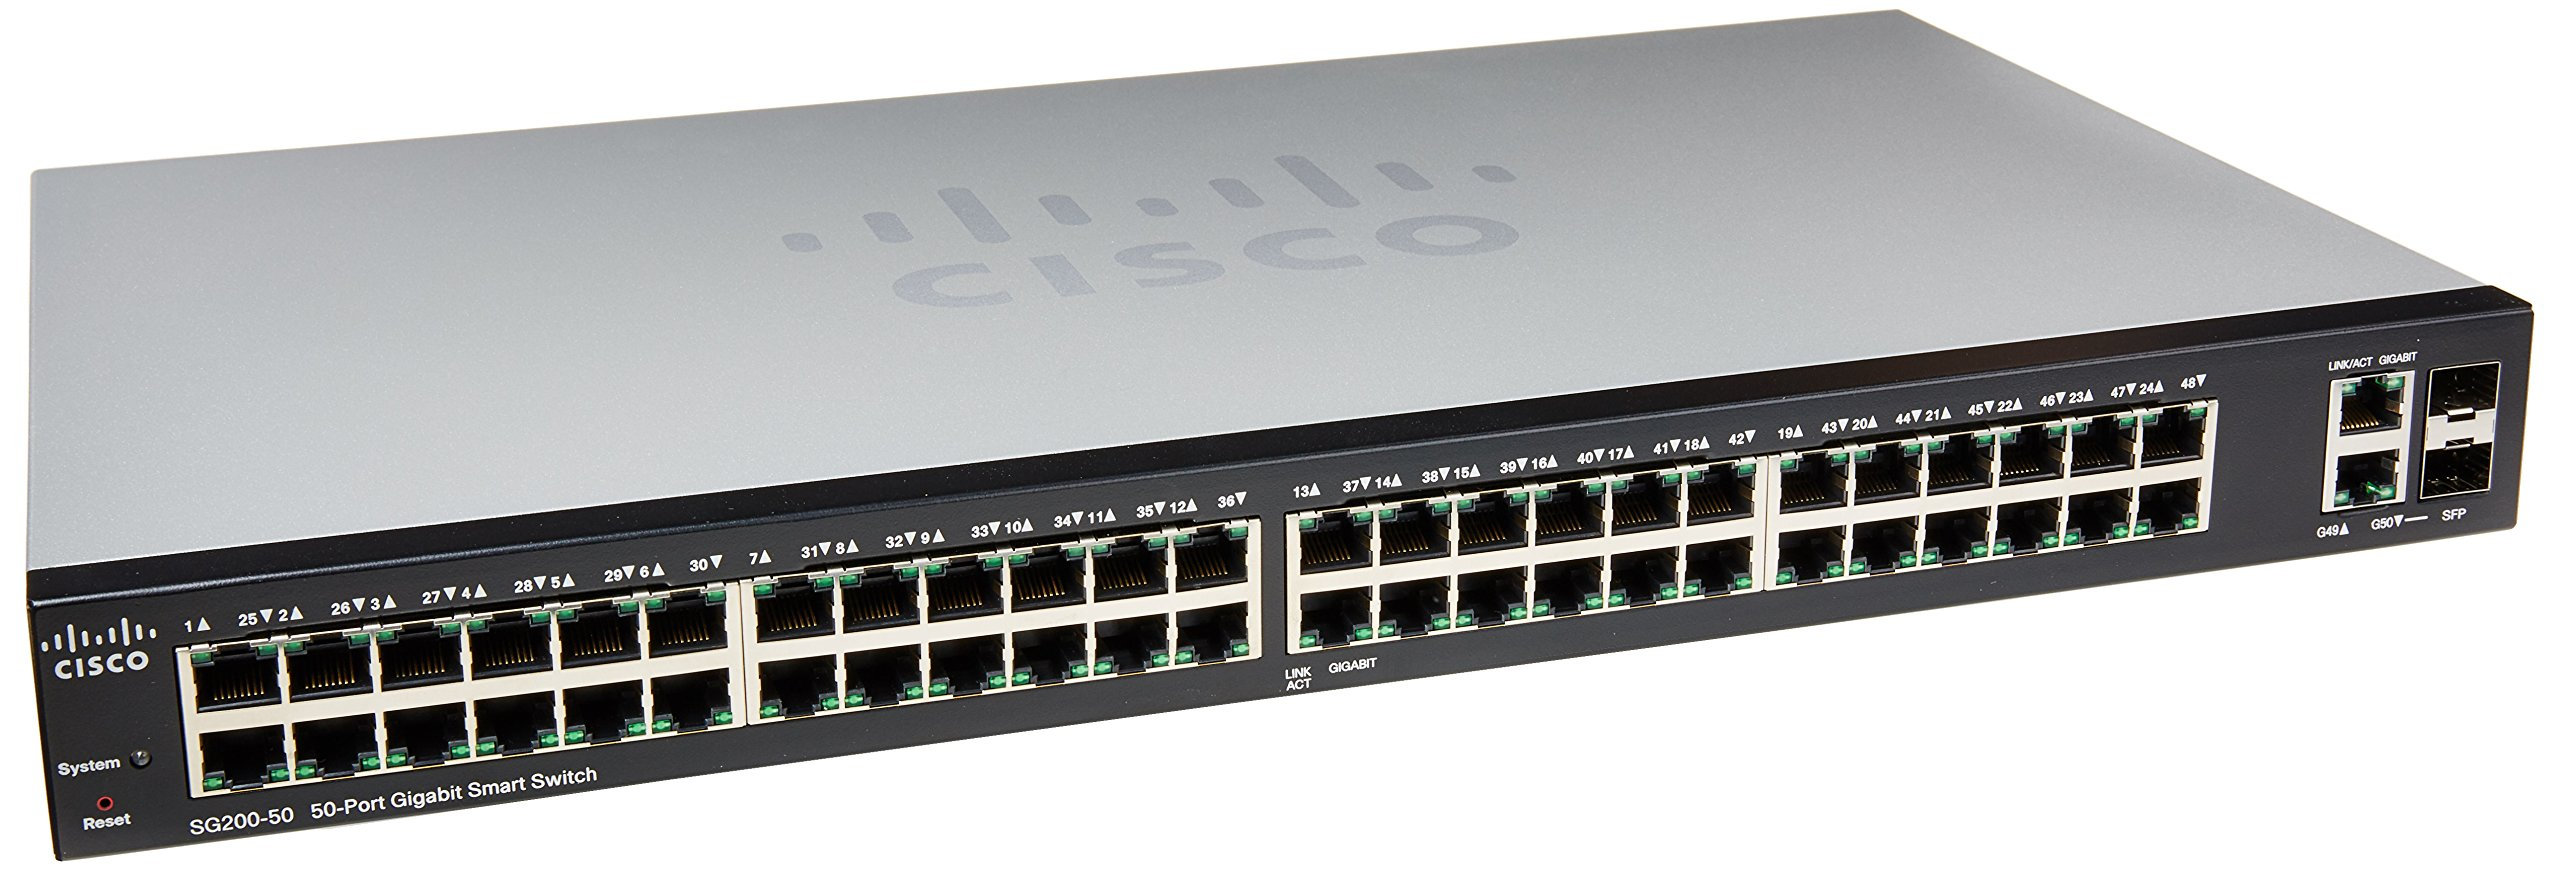 Cisco Small Business 200 Series SLM2048T-NA Smart SG200-50 Gigabit Switch 48 10/100/1000 Ports, Gigabit Ethernet Smart Switch, 2 Combo Mini-GBIC Ports